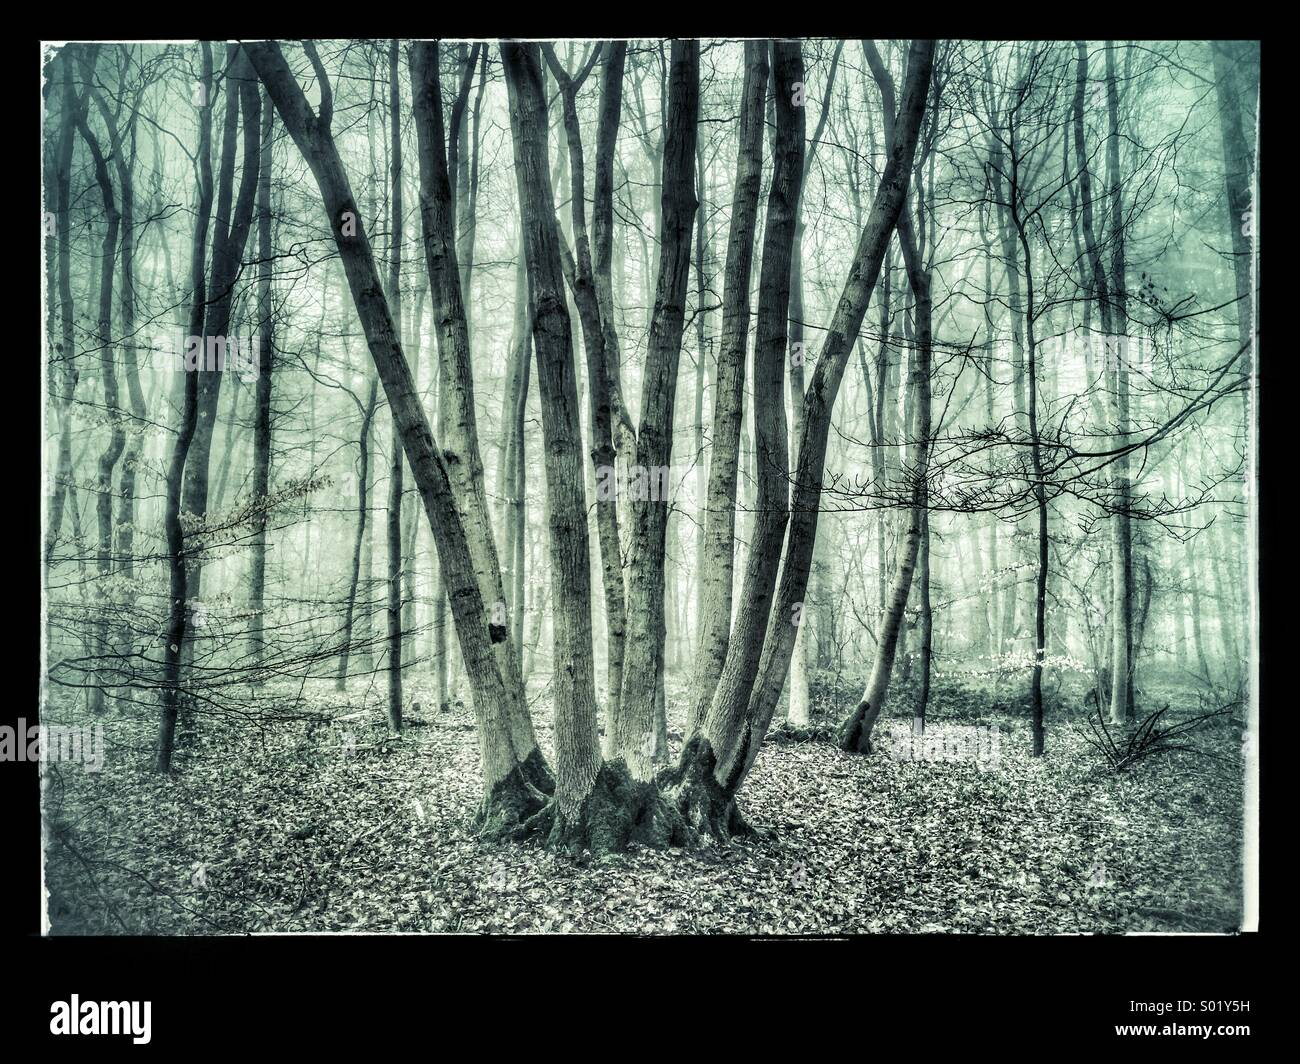 Ancient tree trunks in a misty wood - Stock Image